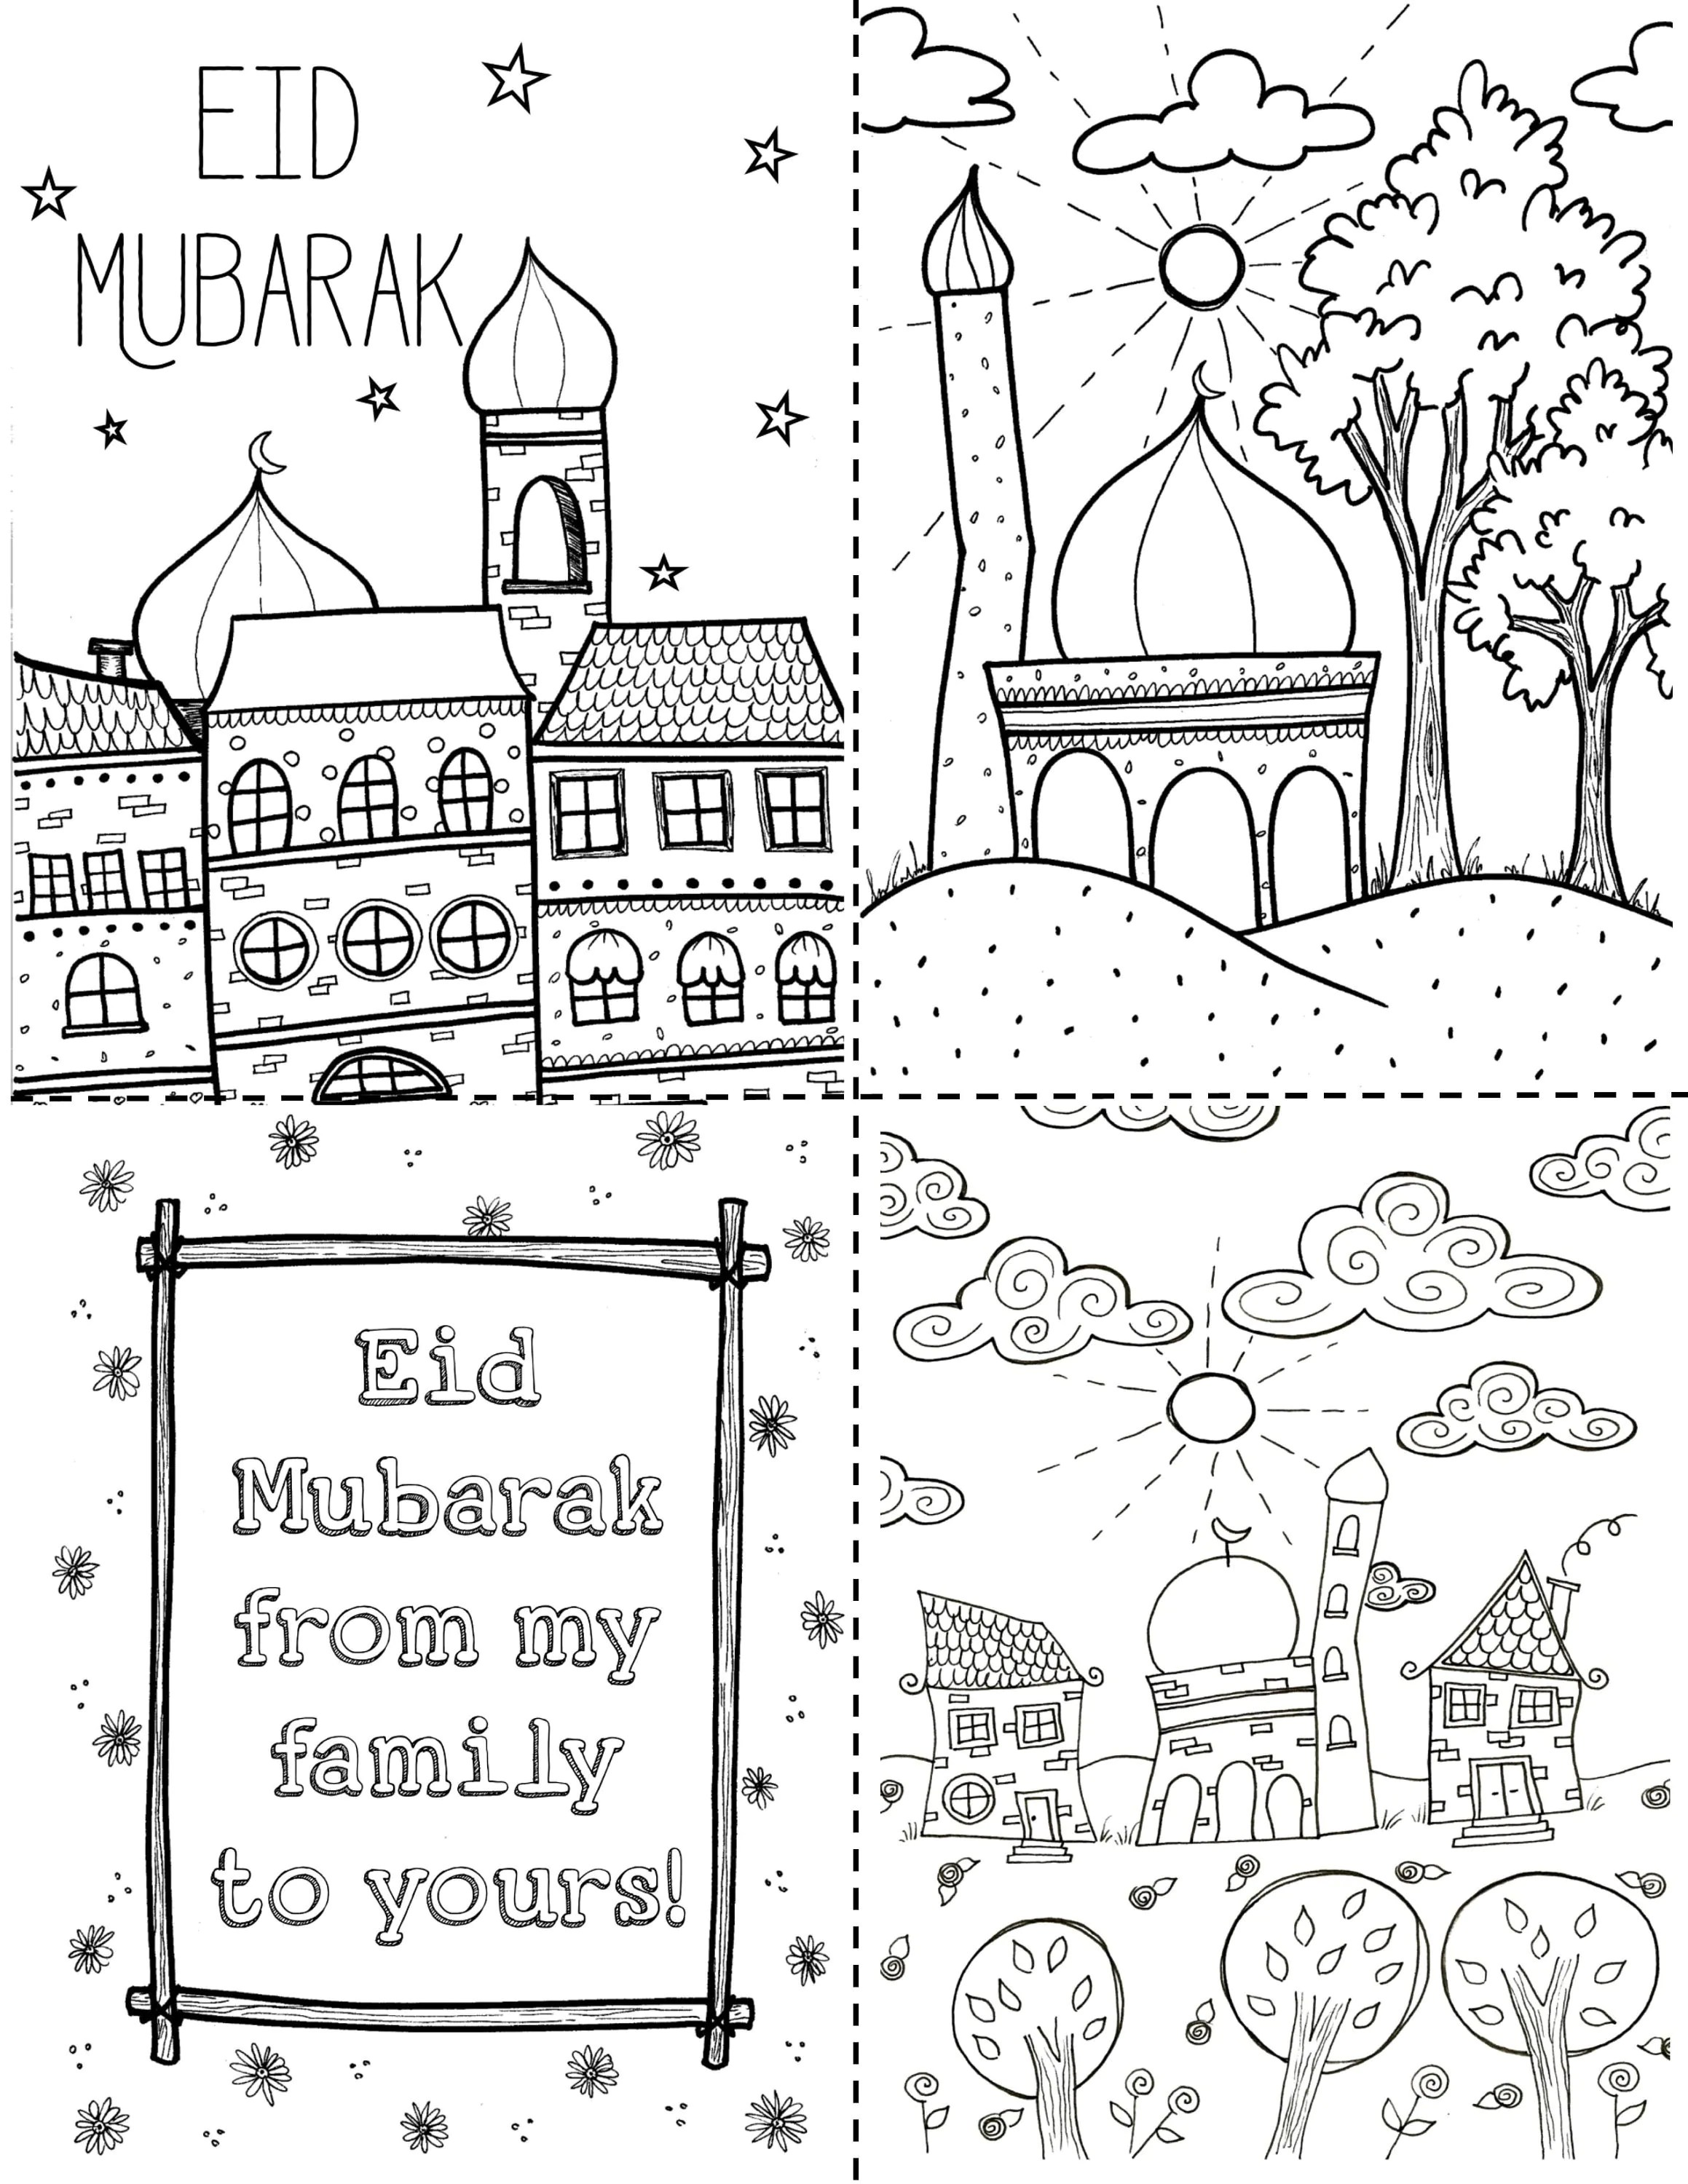 Eid Mubarak Printable Coloring Postcard Eid Decoration